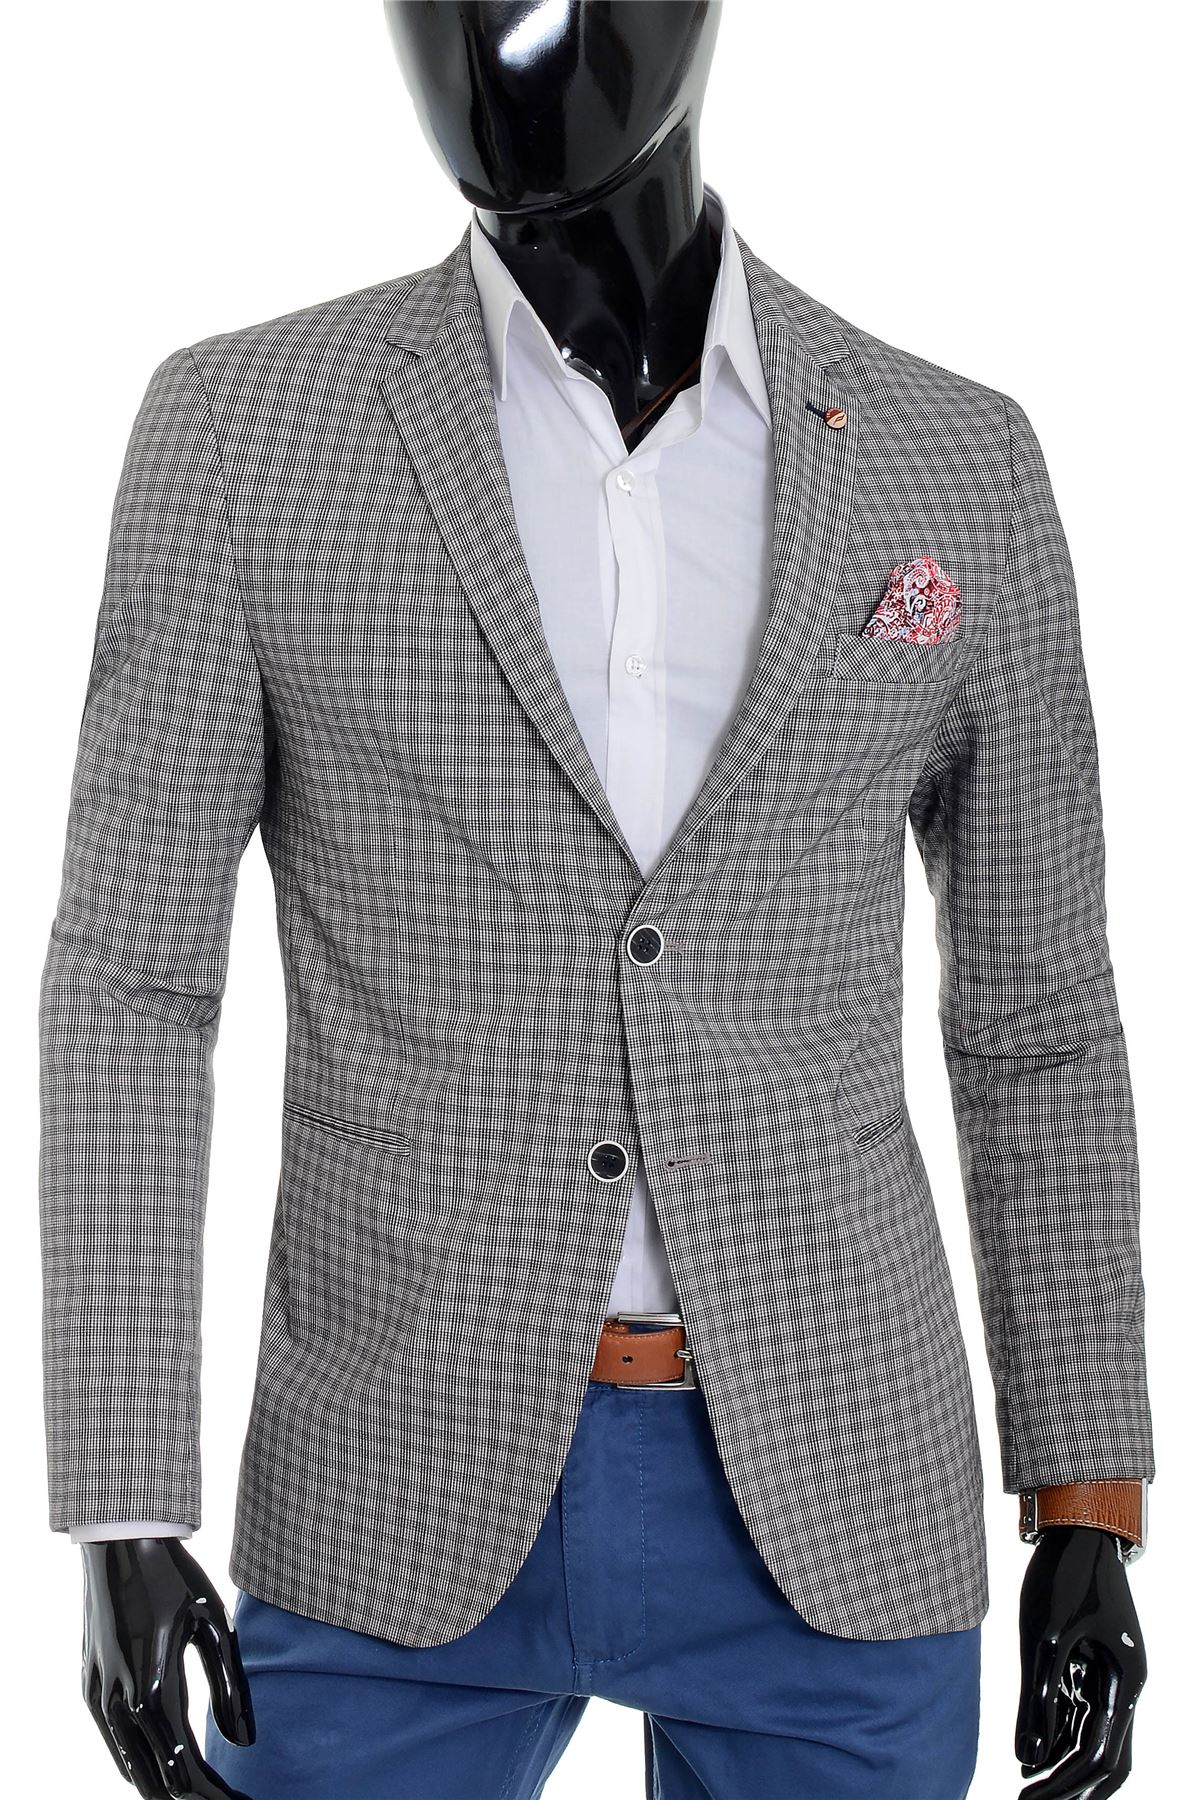 Mens-Checkered-Blazer-Jacket-Formal-Blue-Brown-Paisley-Finish-Cotton-Regular-Fit thumbnail 18